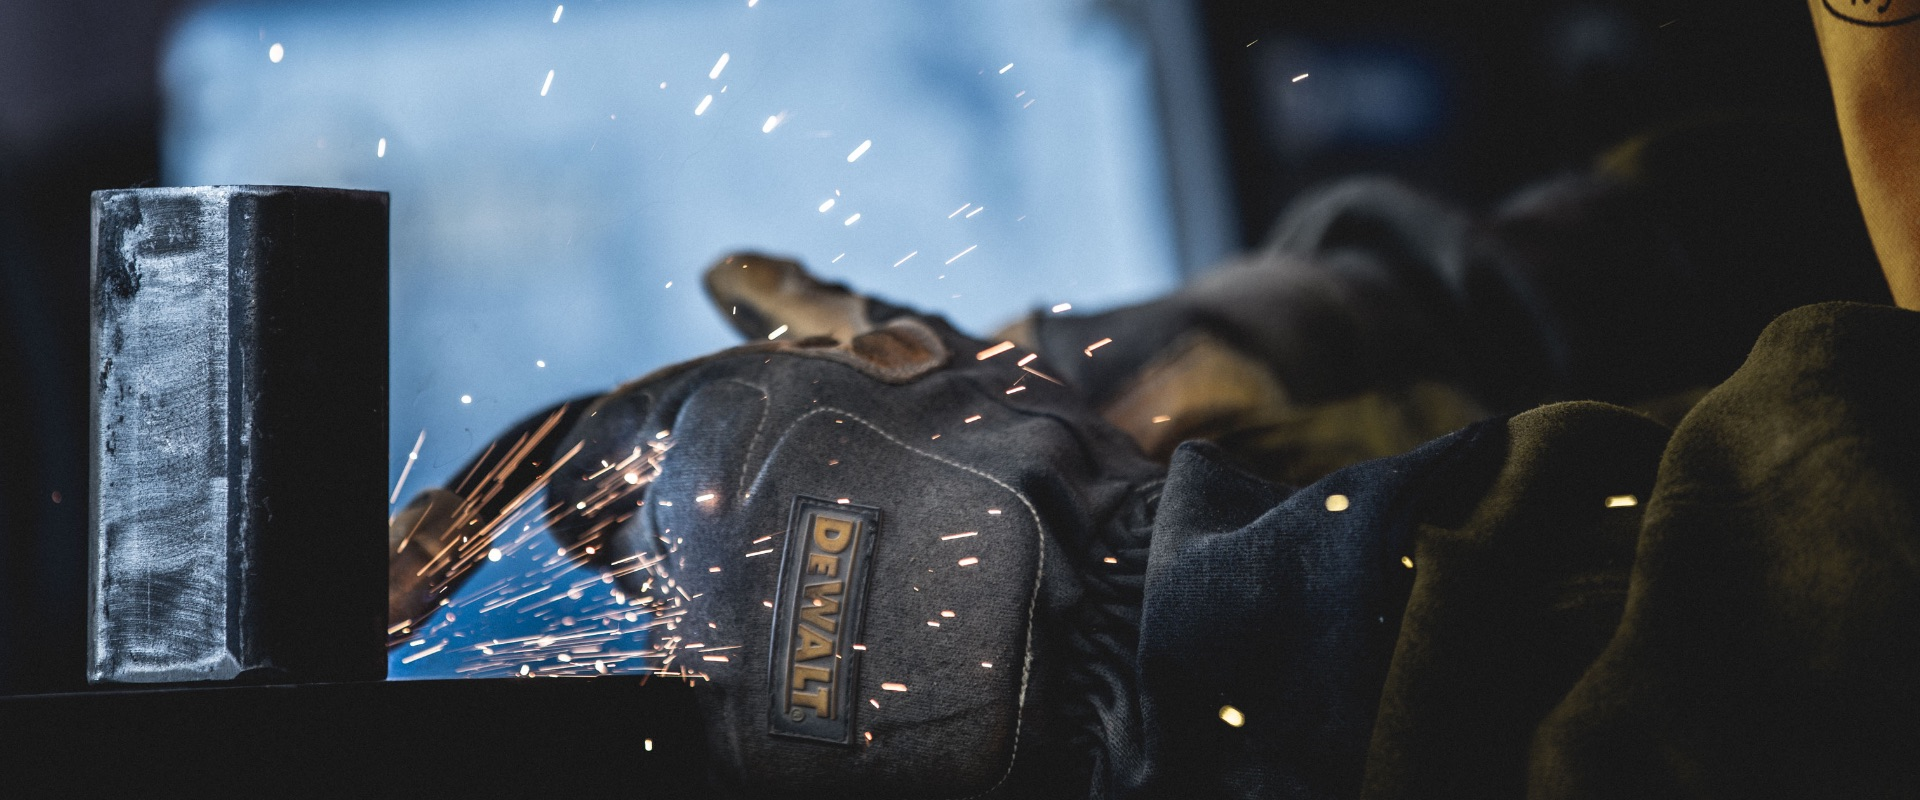 DEWALT Premium Fabrication Welding Gloves